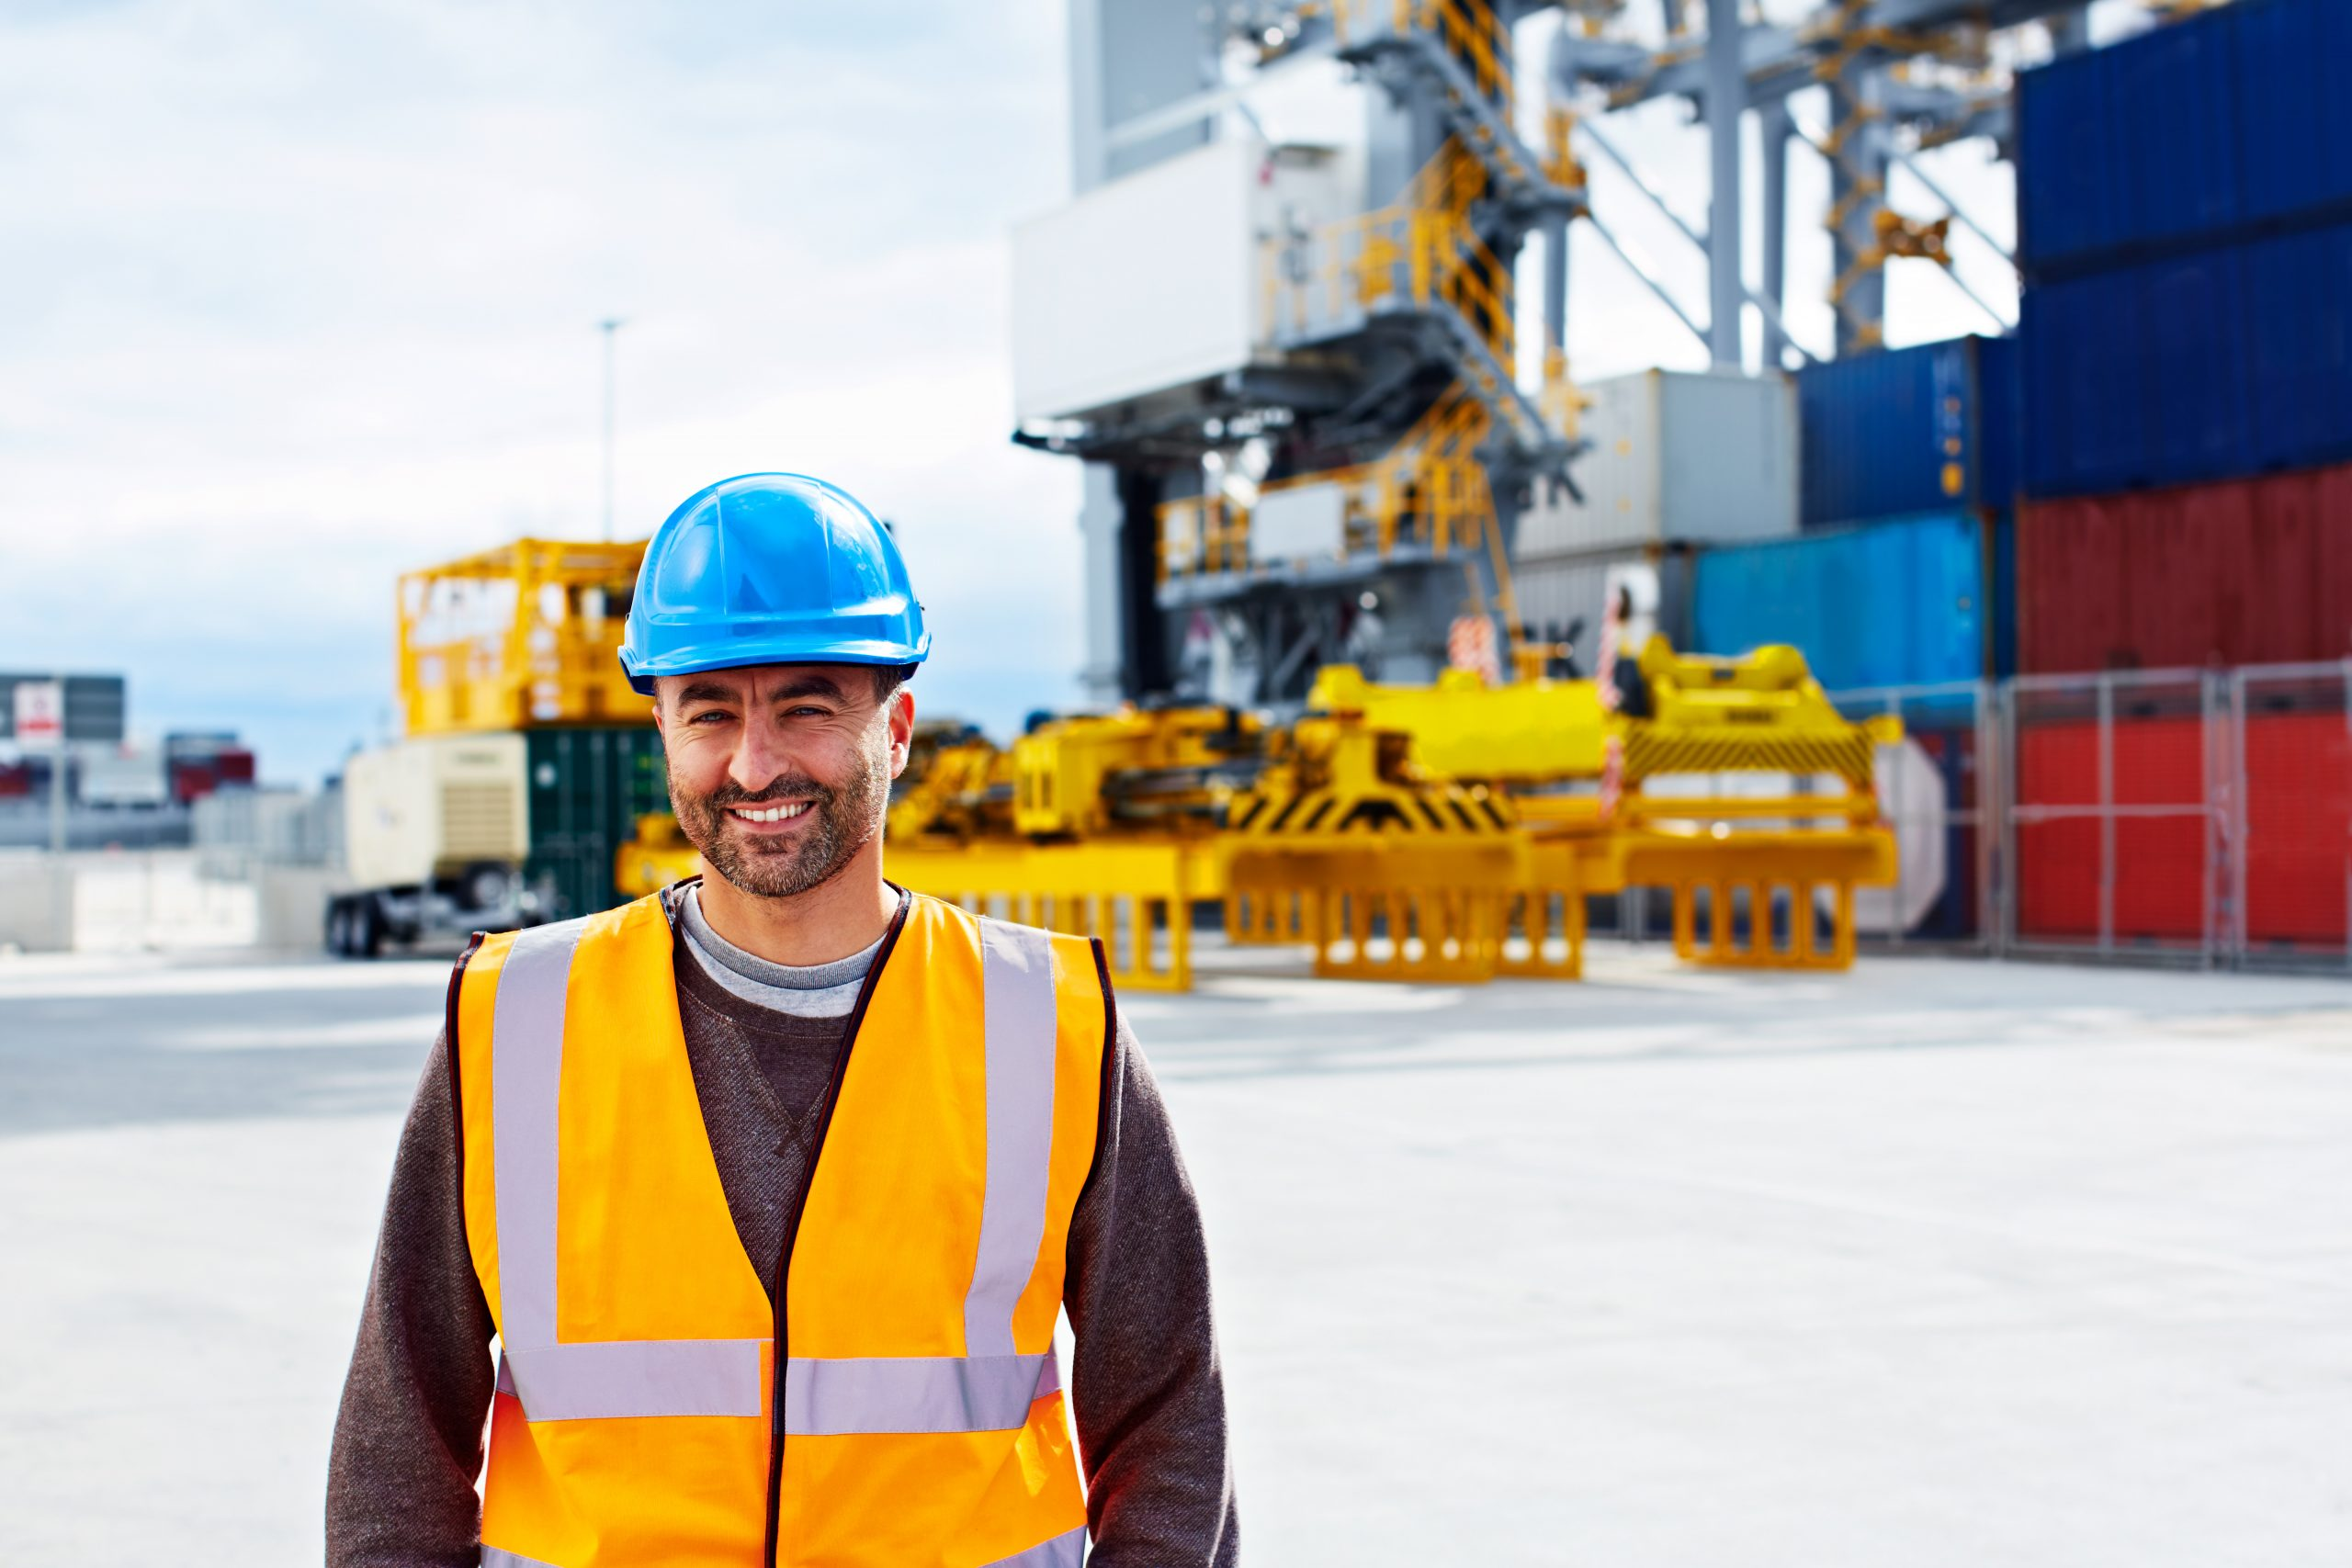 Portrait of a young man in workwear standing outside on a large commercial dock